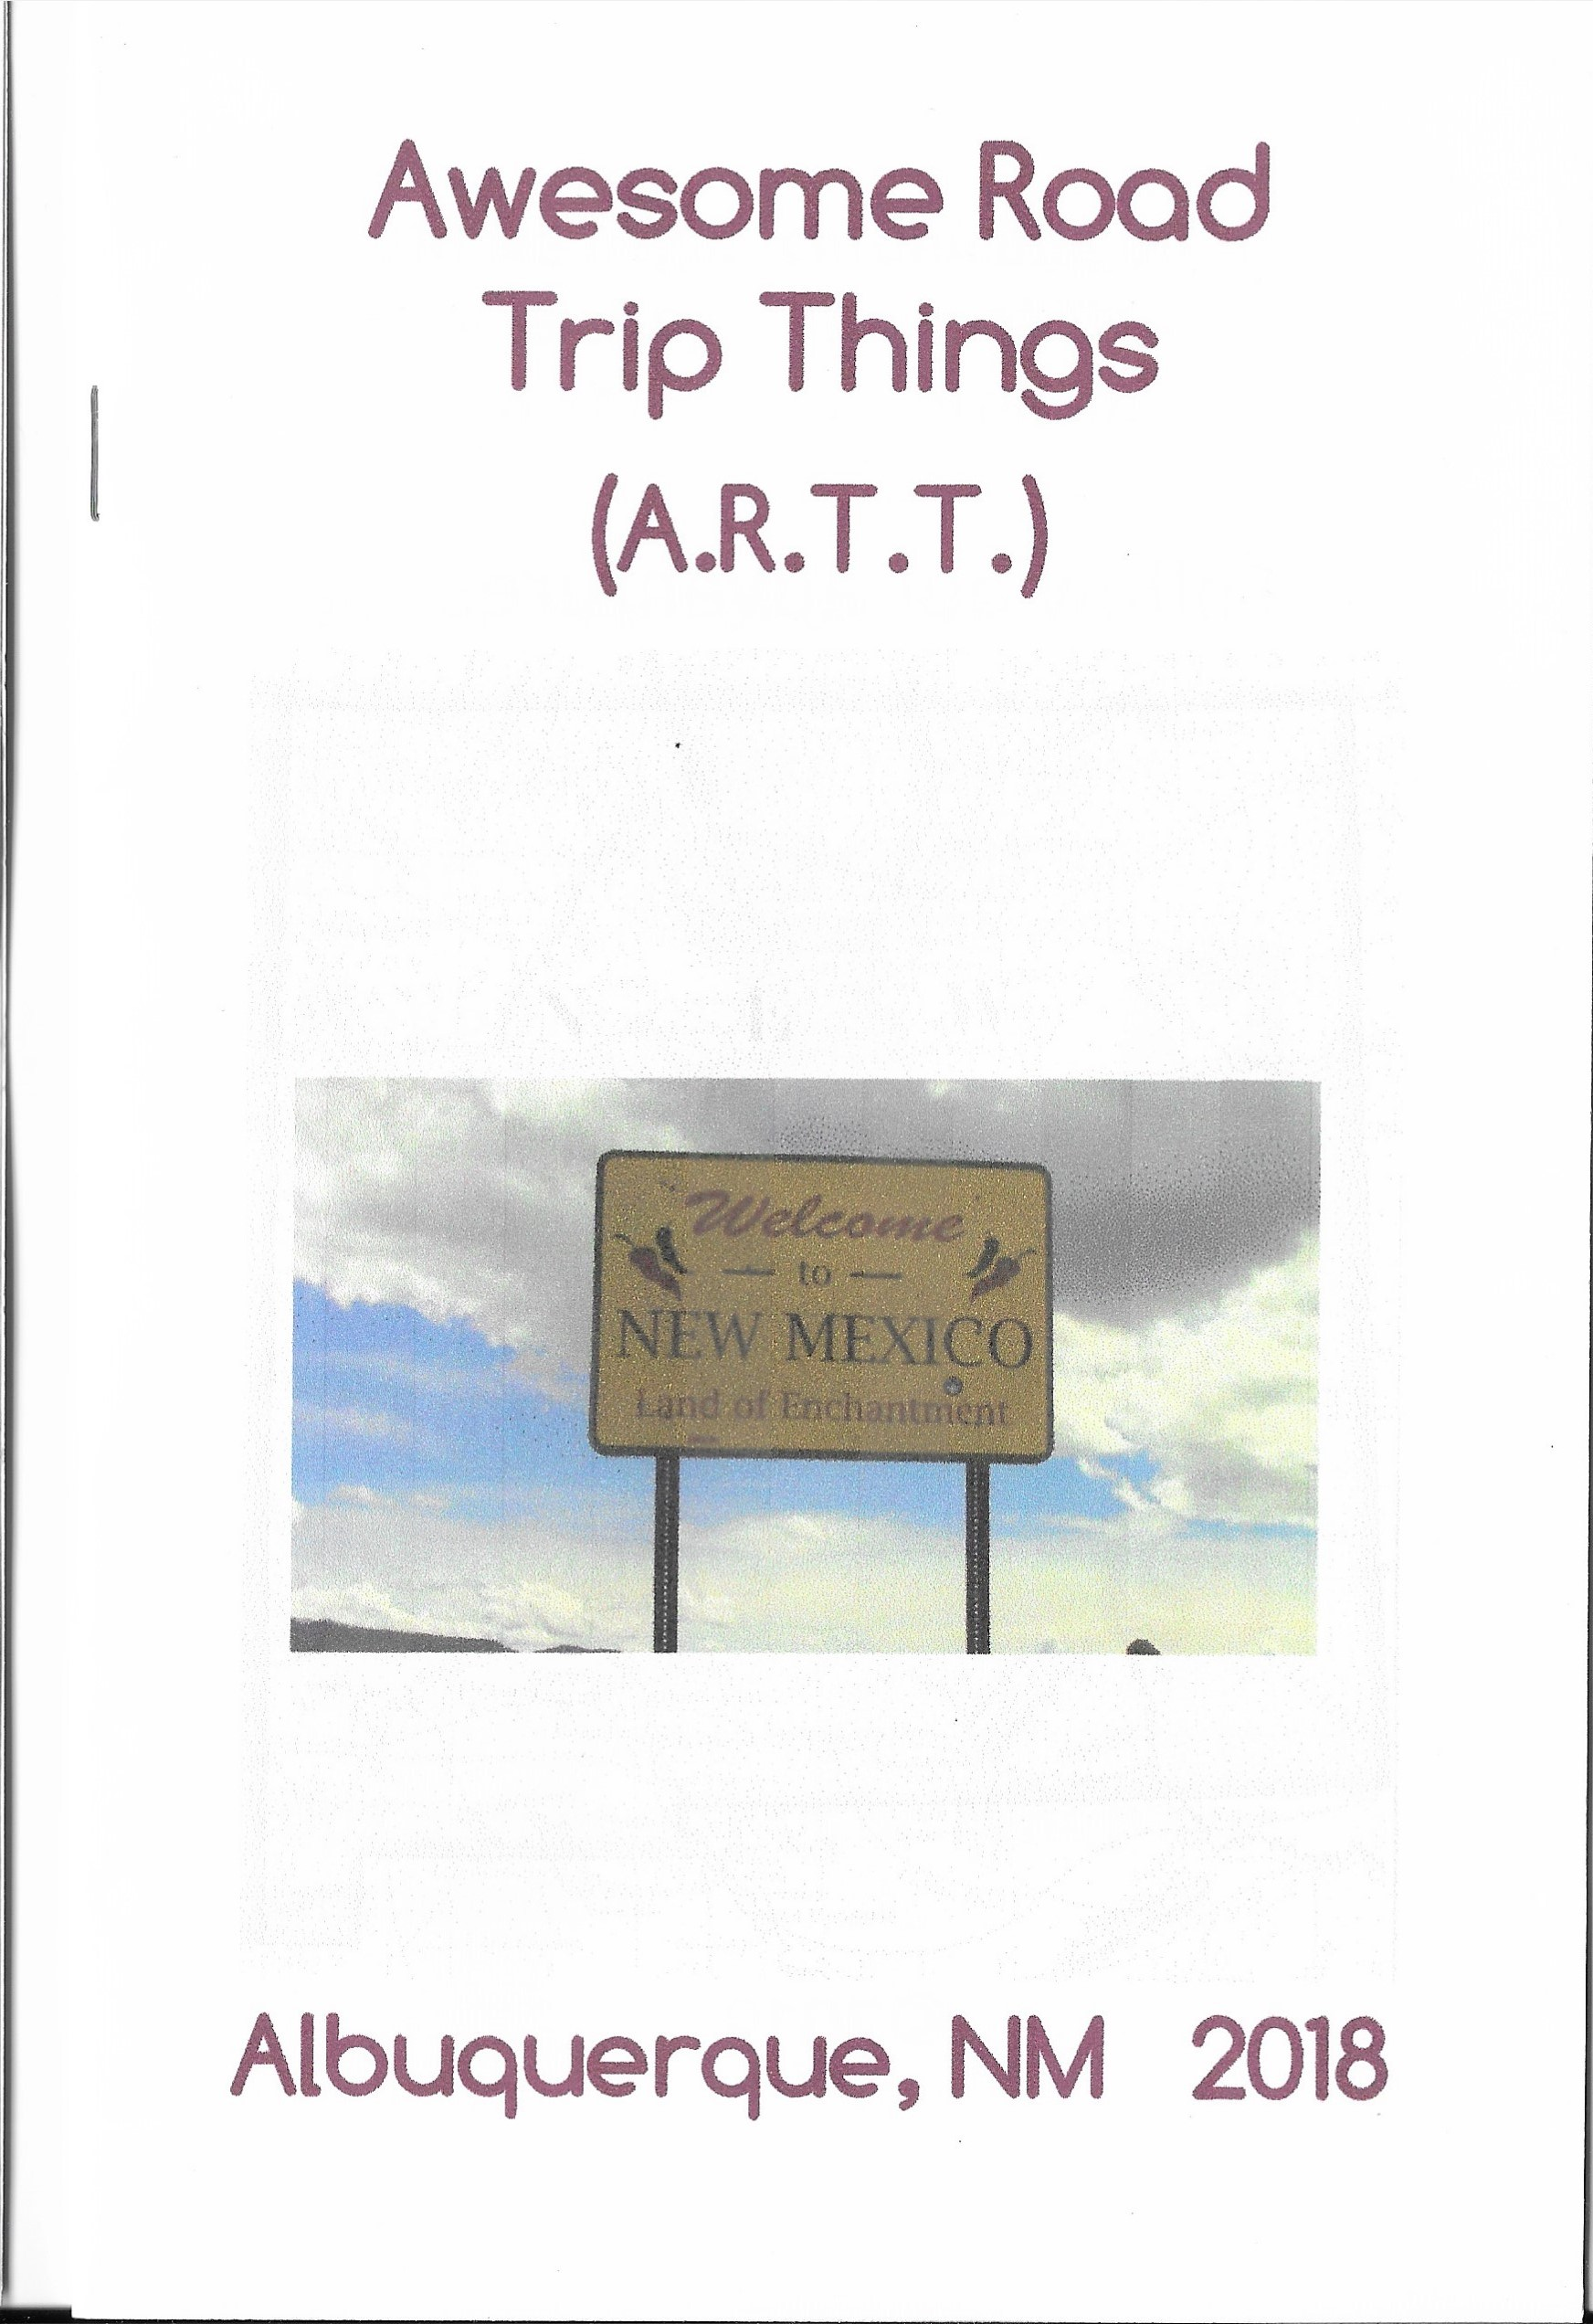 Awesome Road Trip Things (artt) Albuquerque, When we were traveling we blogged our favorite road trip things on Instagram and then made that into a zine. Read all about it. copyright 2018 Artistic NomadsNew Mexico, 2018,